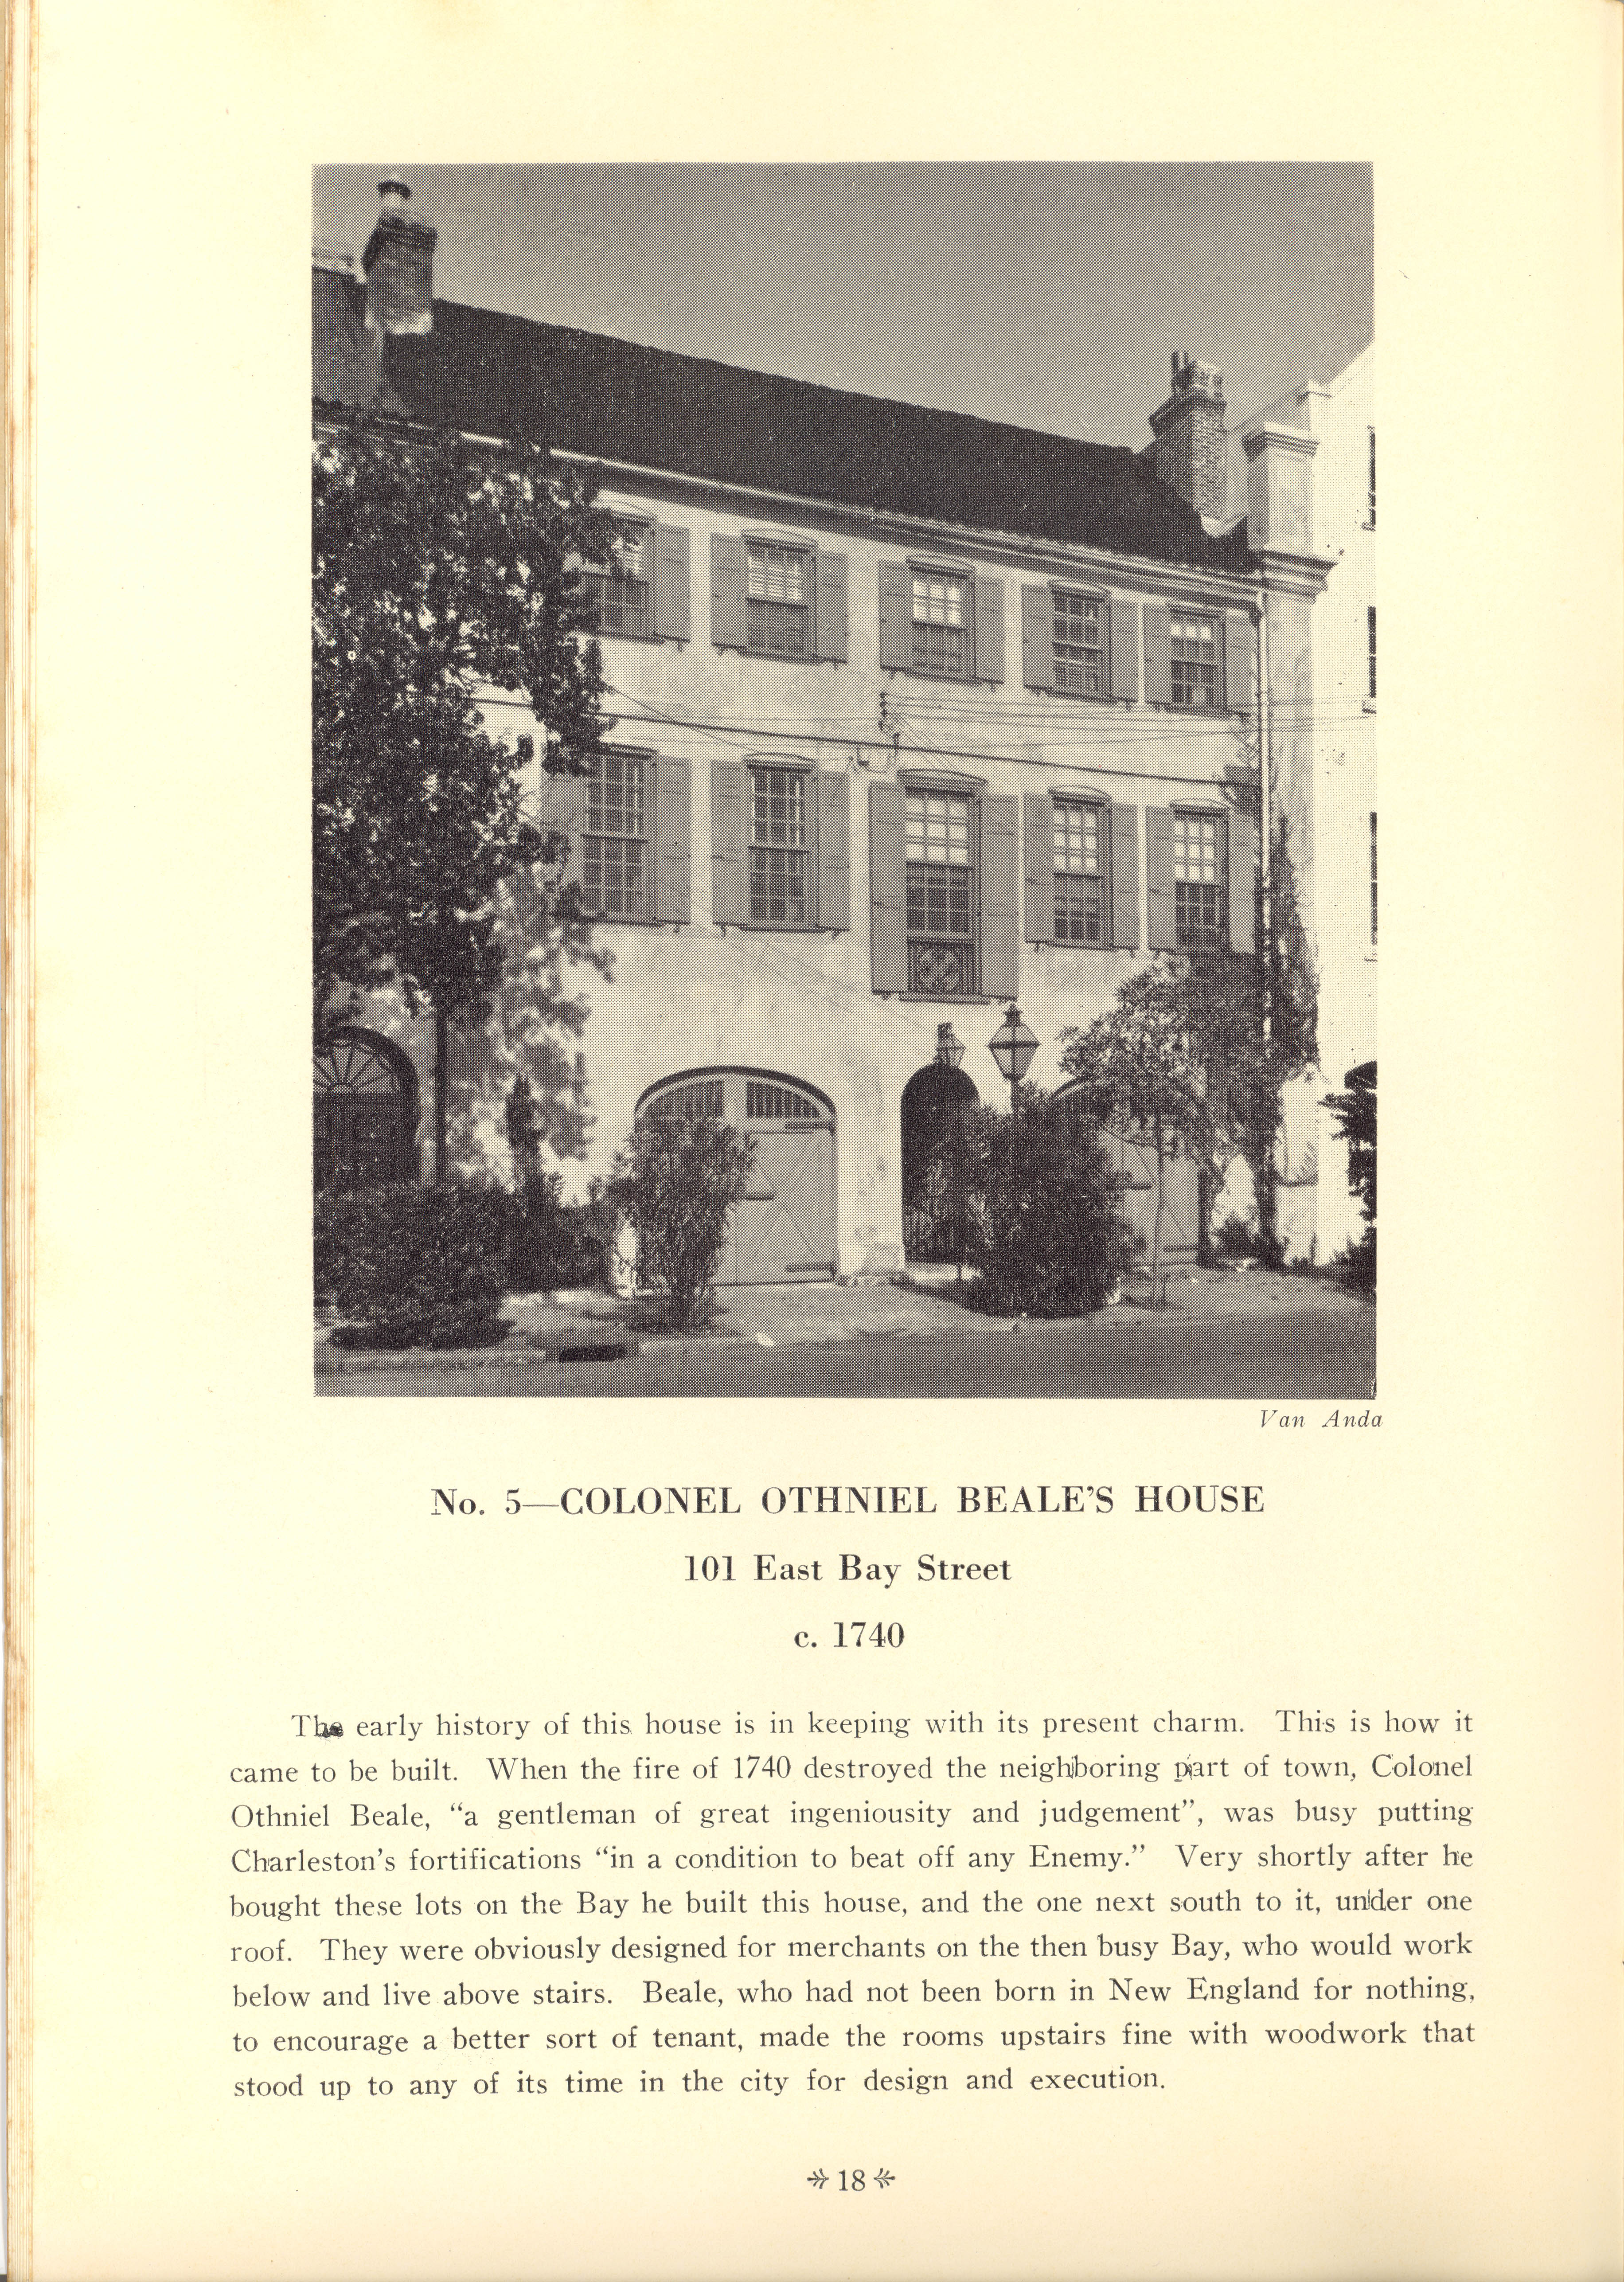 Page 18:  No. 5 - Colonel Othniel Beale's House, 101 East Bay Street, c. 1740